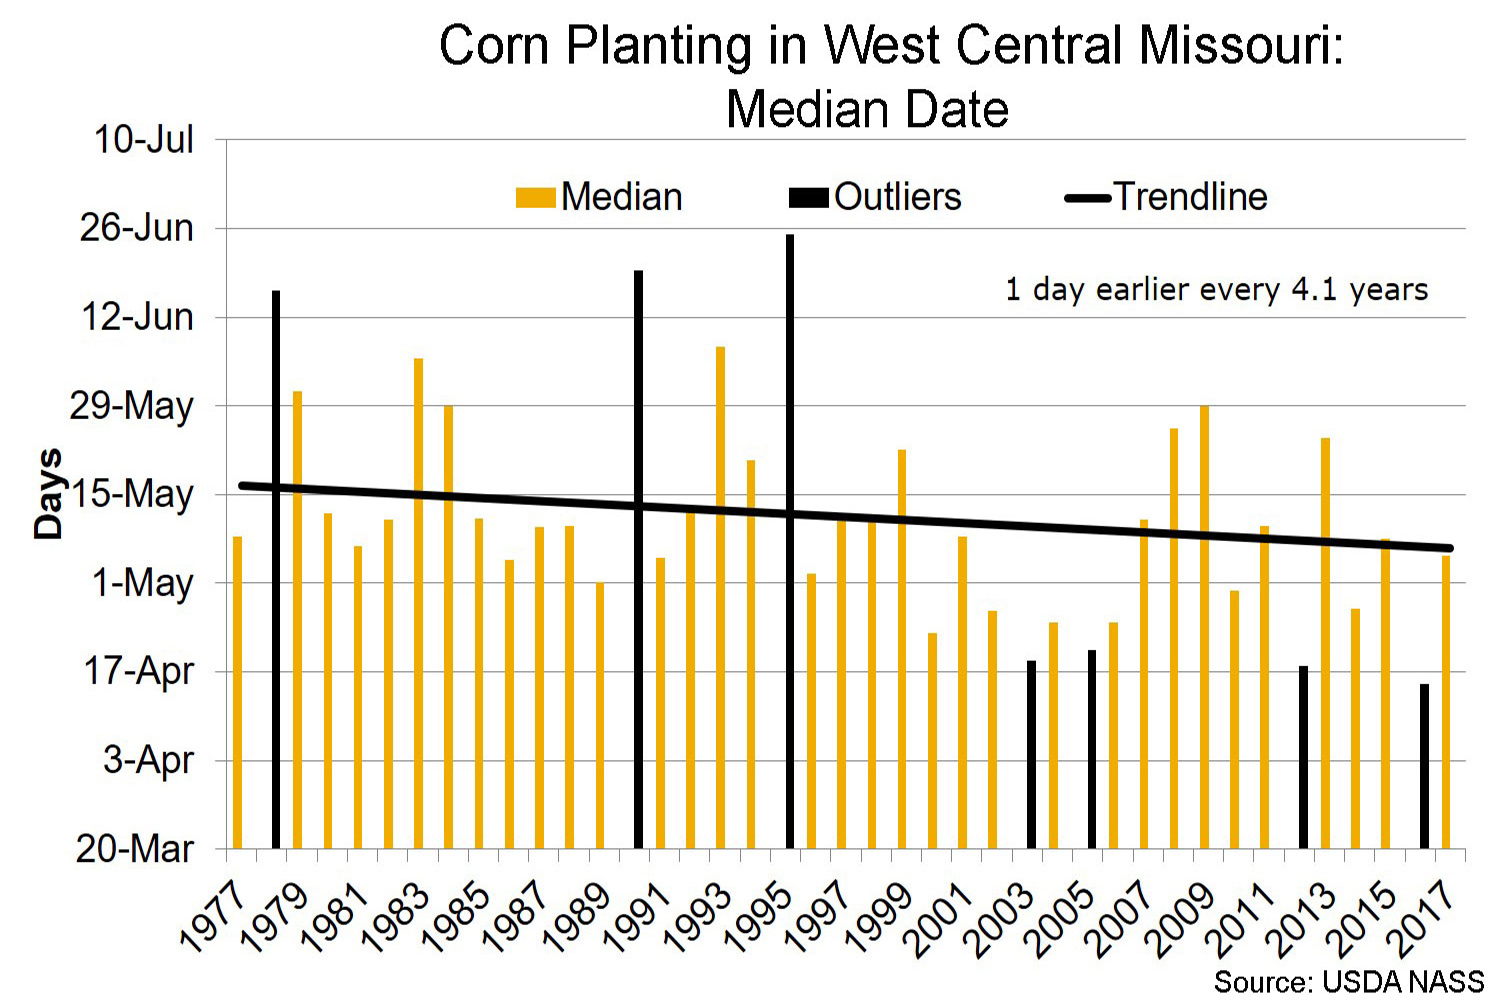 Corn planting in west central Missouri median date chart